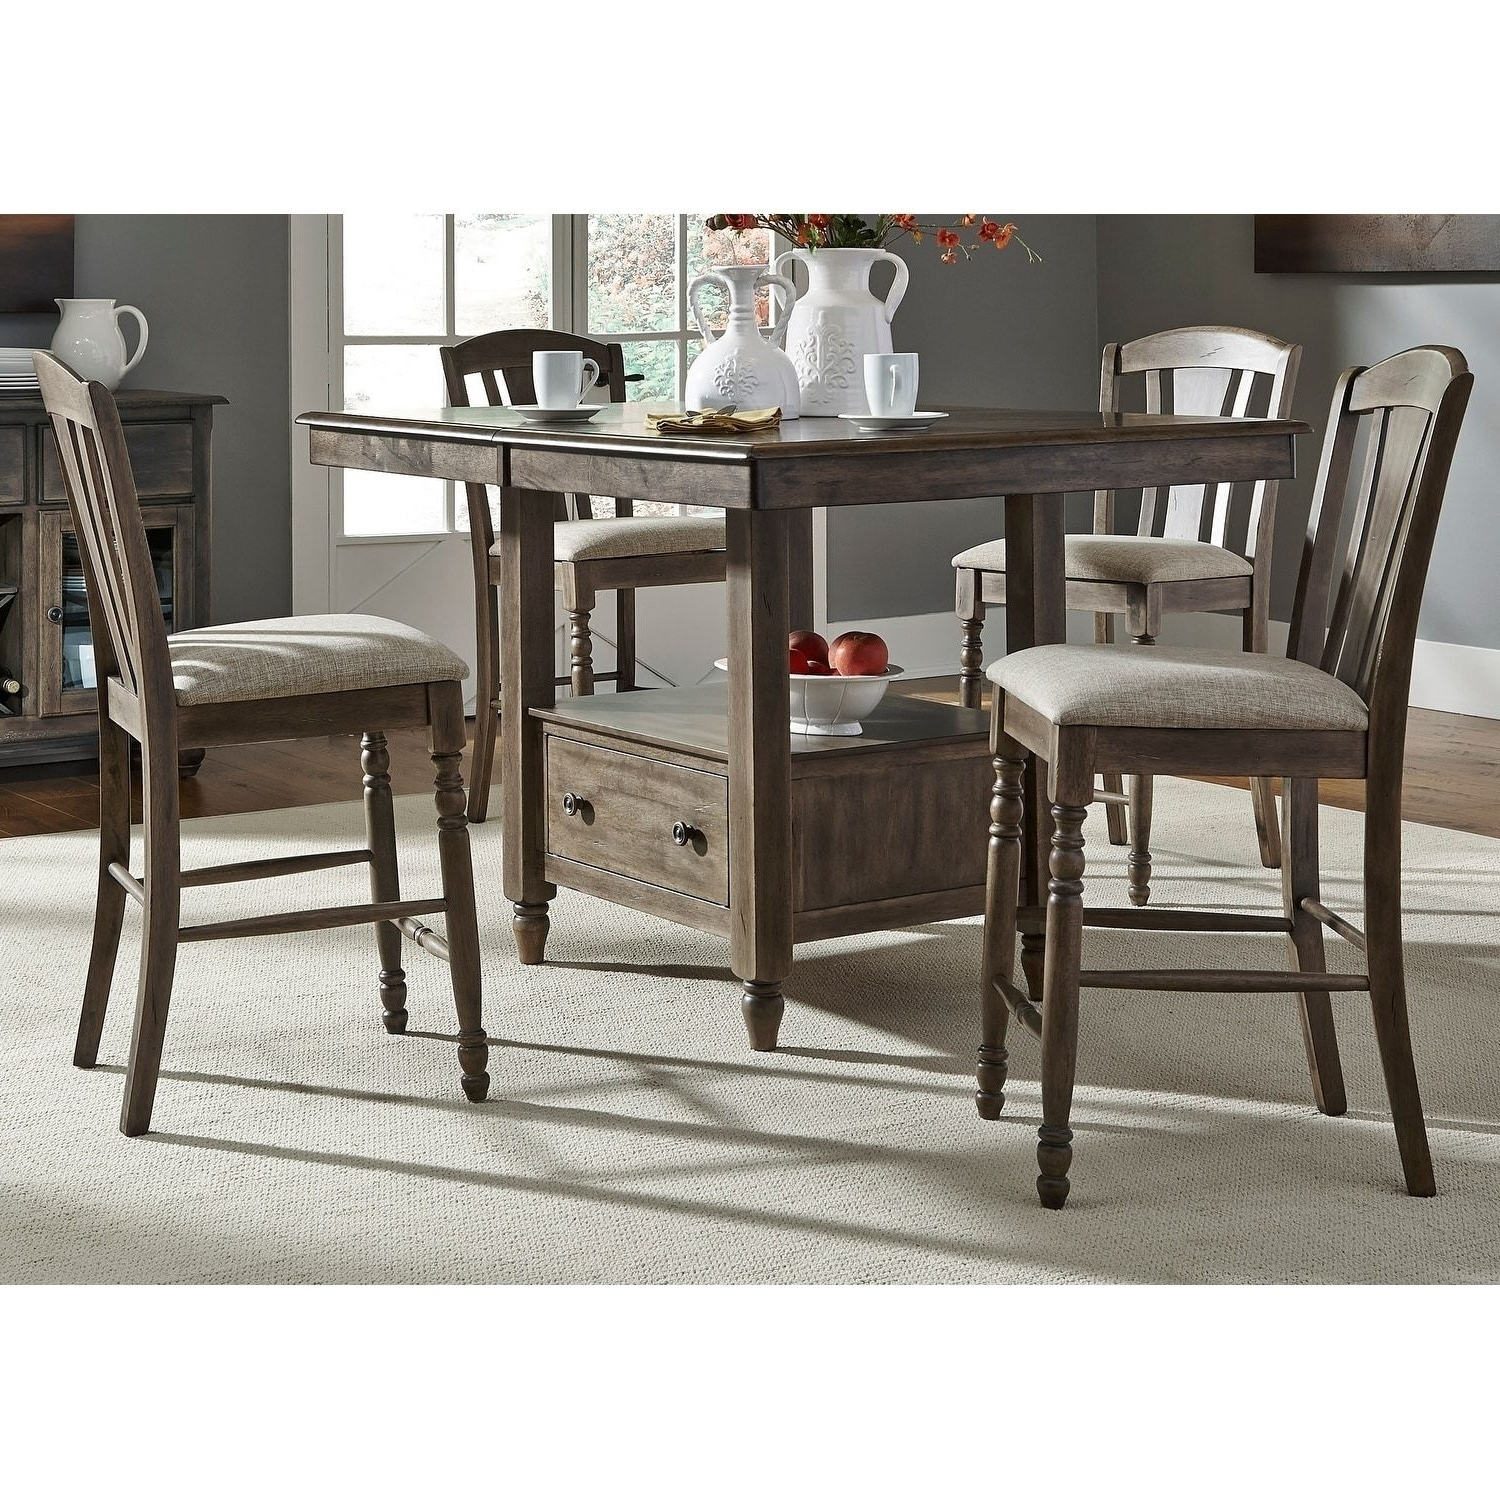 Liberty Candlewood Weather Grey 7 Piece Slat Back Gathering Dinette In Favorite Combs 5 Piece Dining Sets With Mindy Slipcovered Chairs (View 17 of 25)